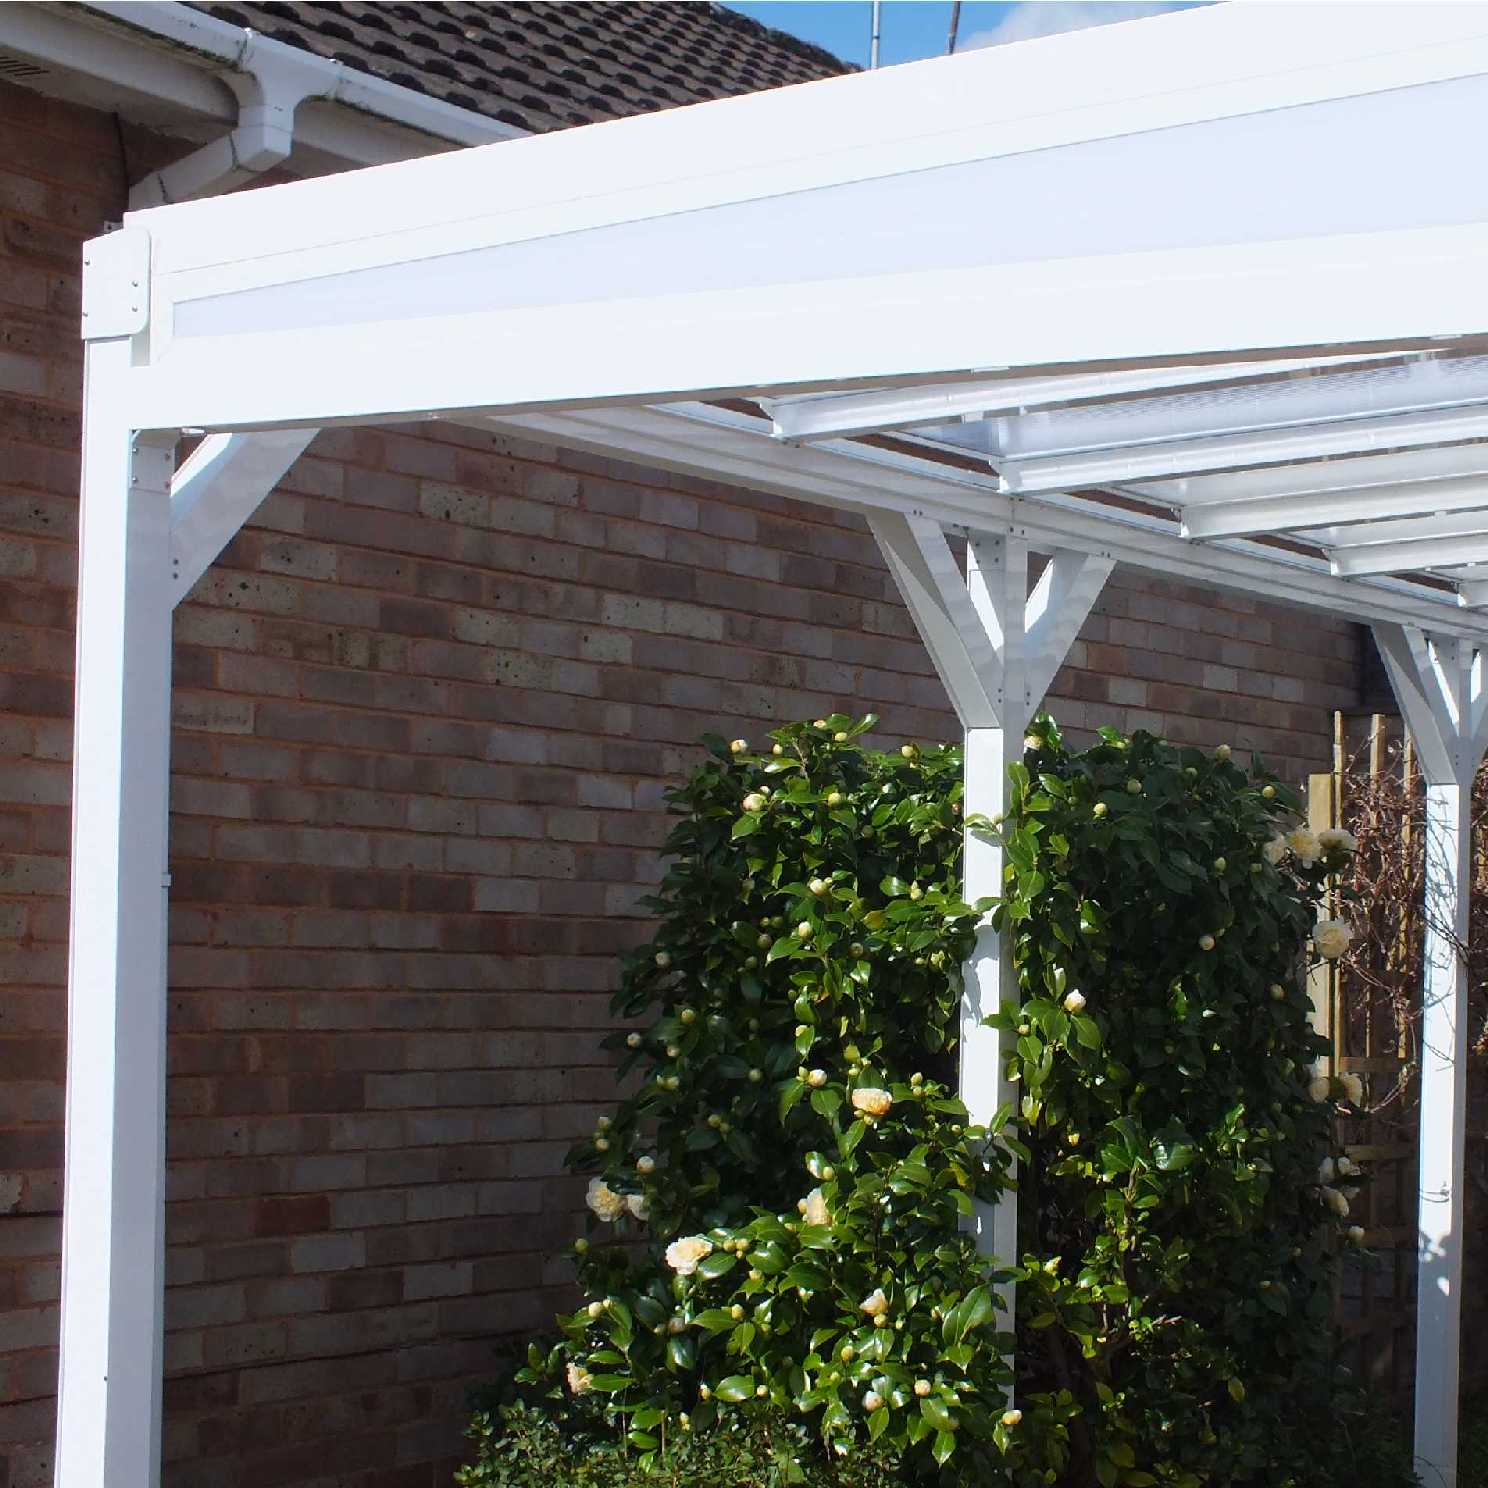 Omega Smart Lean-To Canopy with 16mm Polycarbonate Glazing - 11.6m (W) x 3.0m (P), (5) Supporting Posts from Omega Build